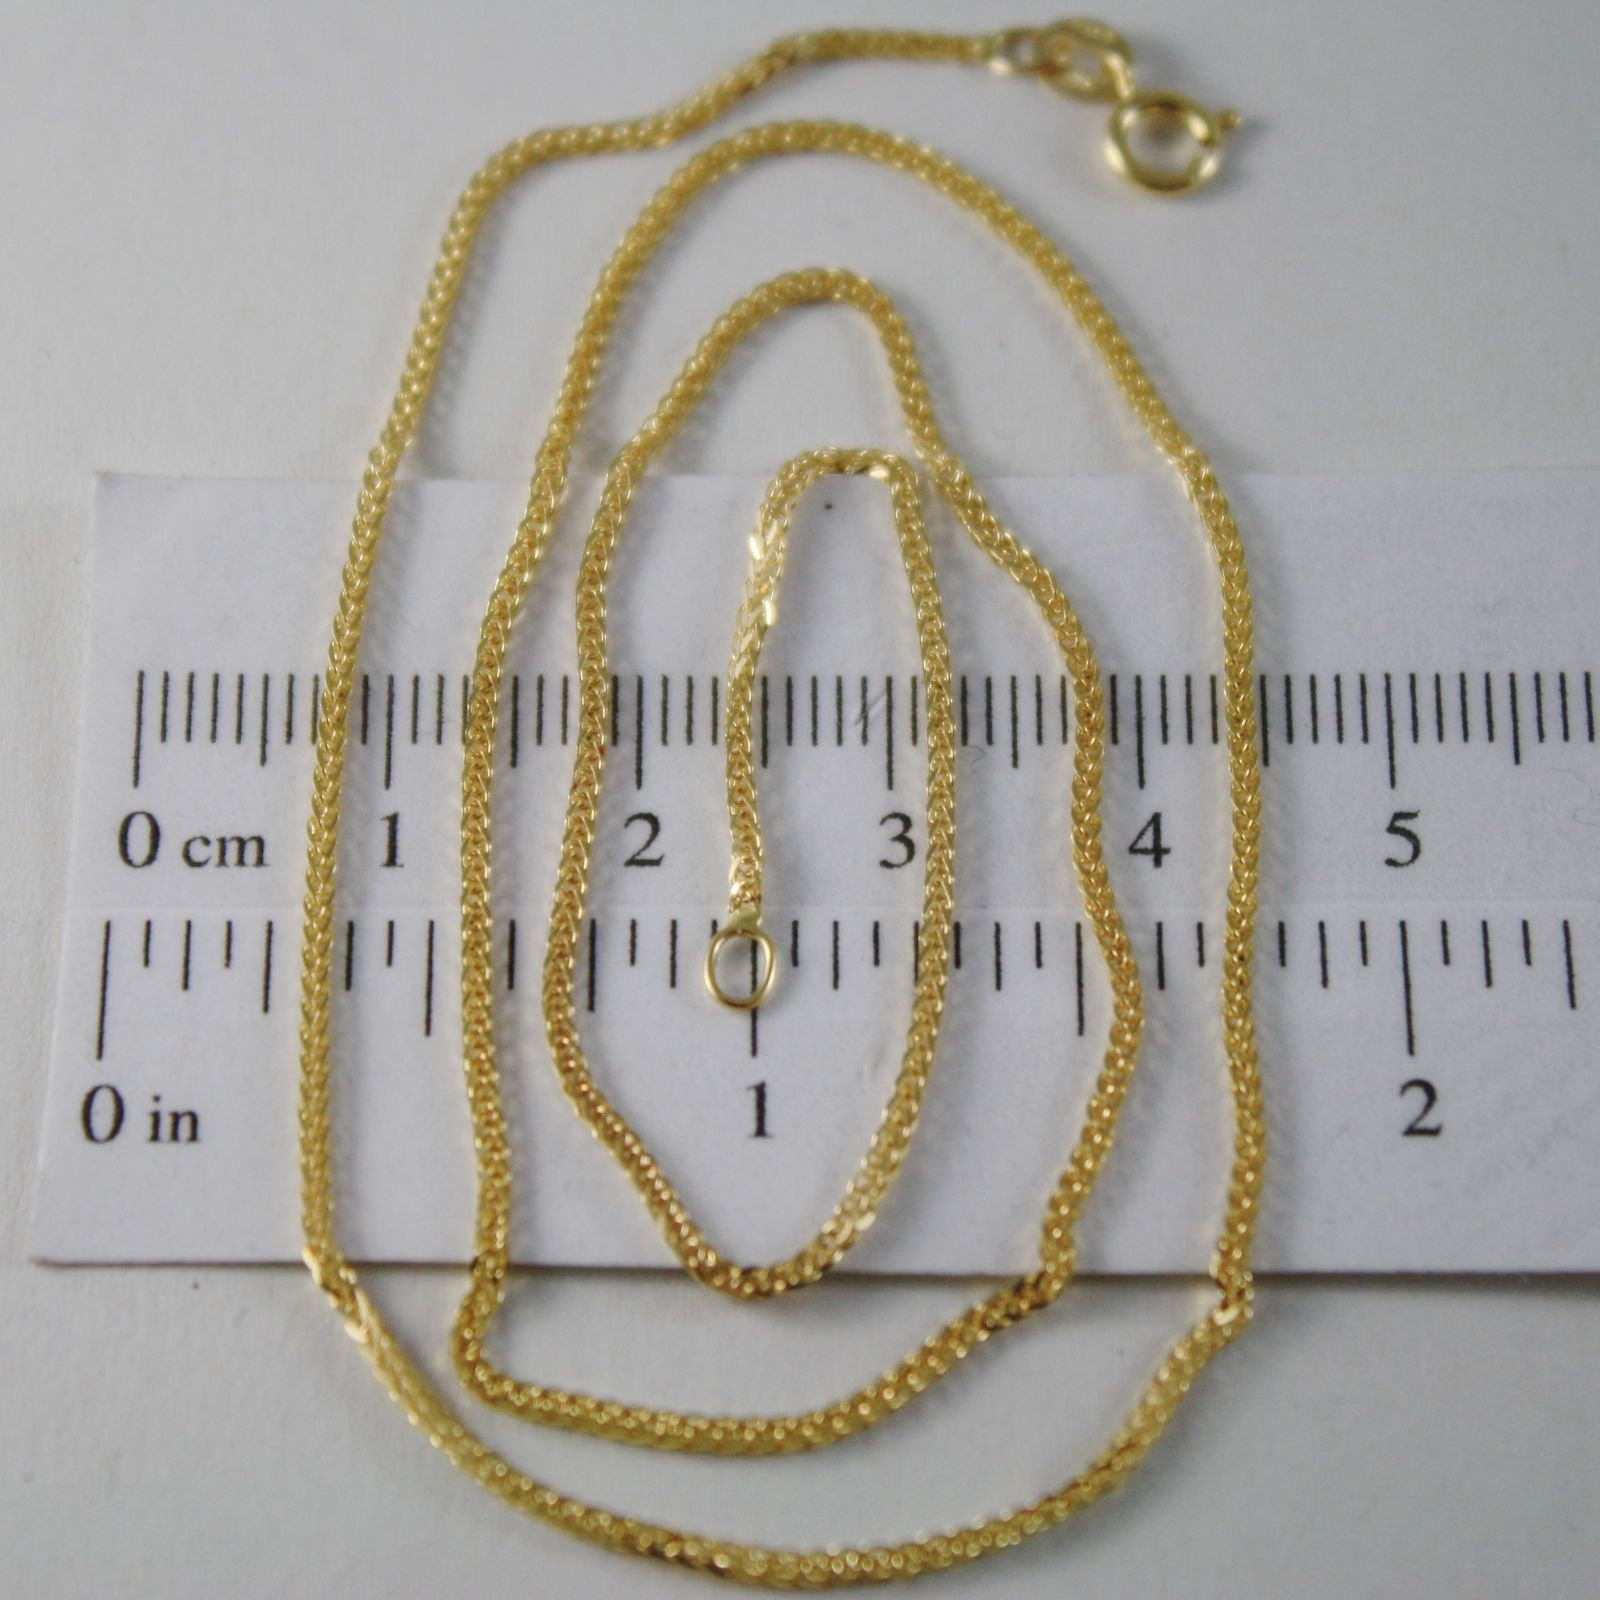 SOLID 18K YELLOW GOLD CHAIN NECKLACE WITH 1MM EAR MESH 23.62 INCH, MADE IN ITALY